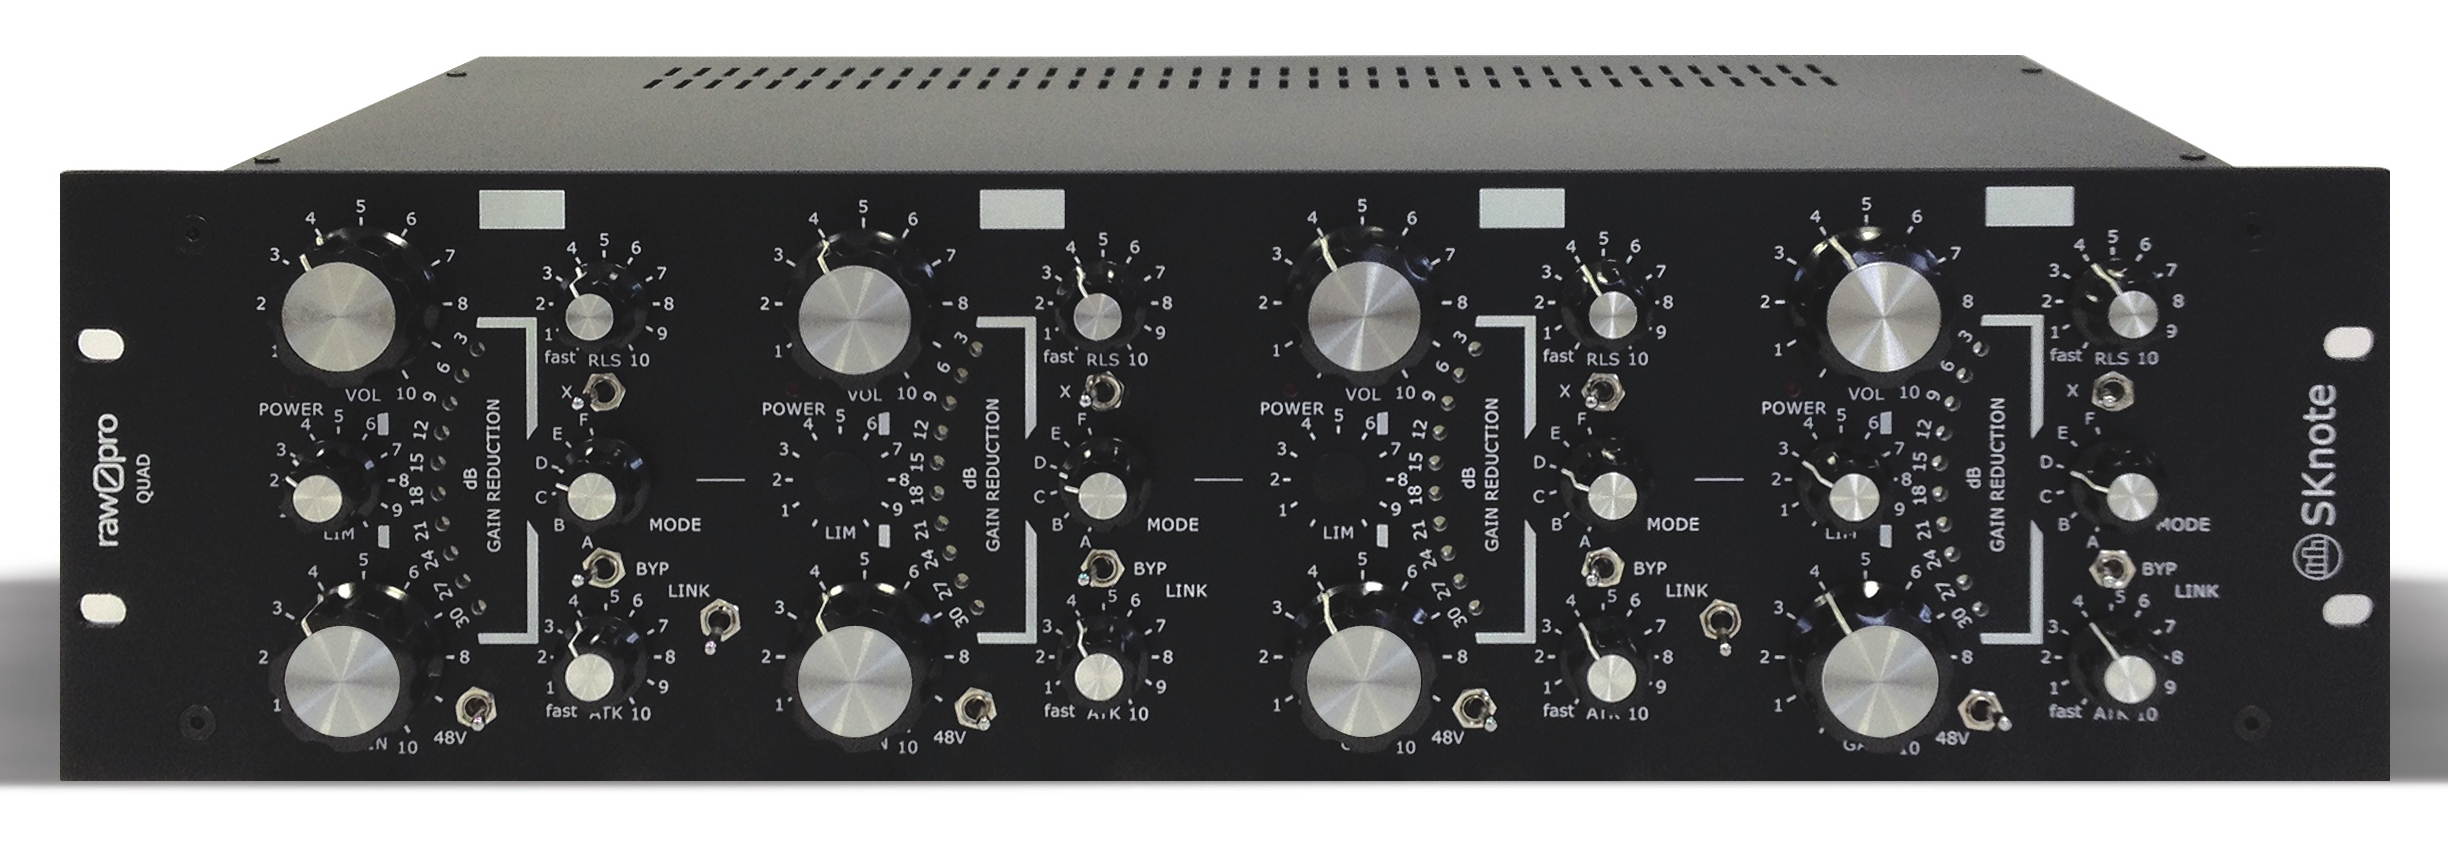 SKnote releases Quad - Quadruple/Stereo-Double analog